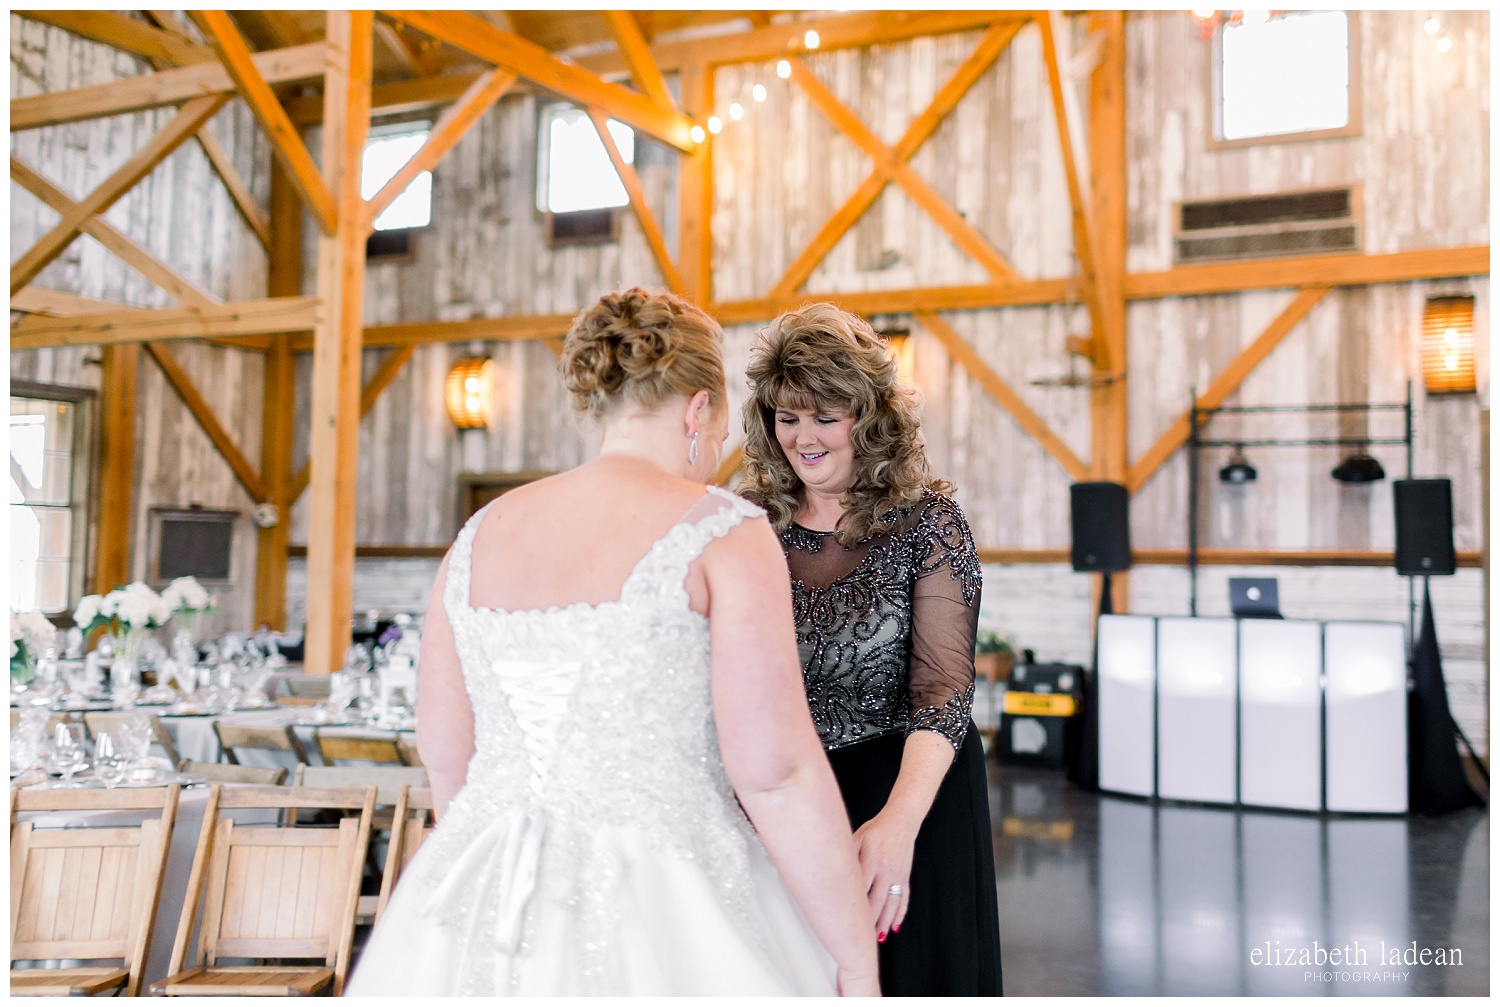 Weston-Timber-Barn-Wedding-Photography-L+A-elizabeth-ladean0photo_1847.jpg